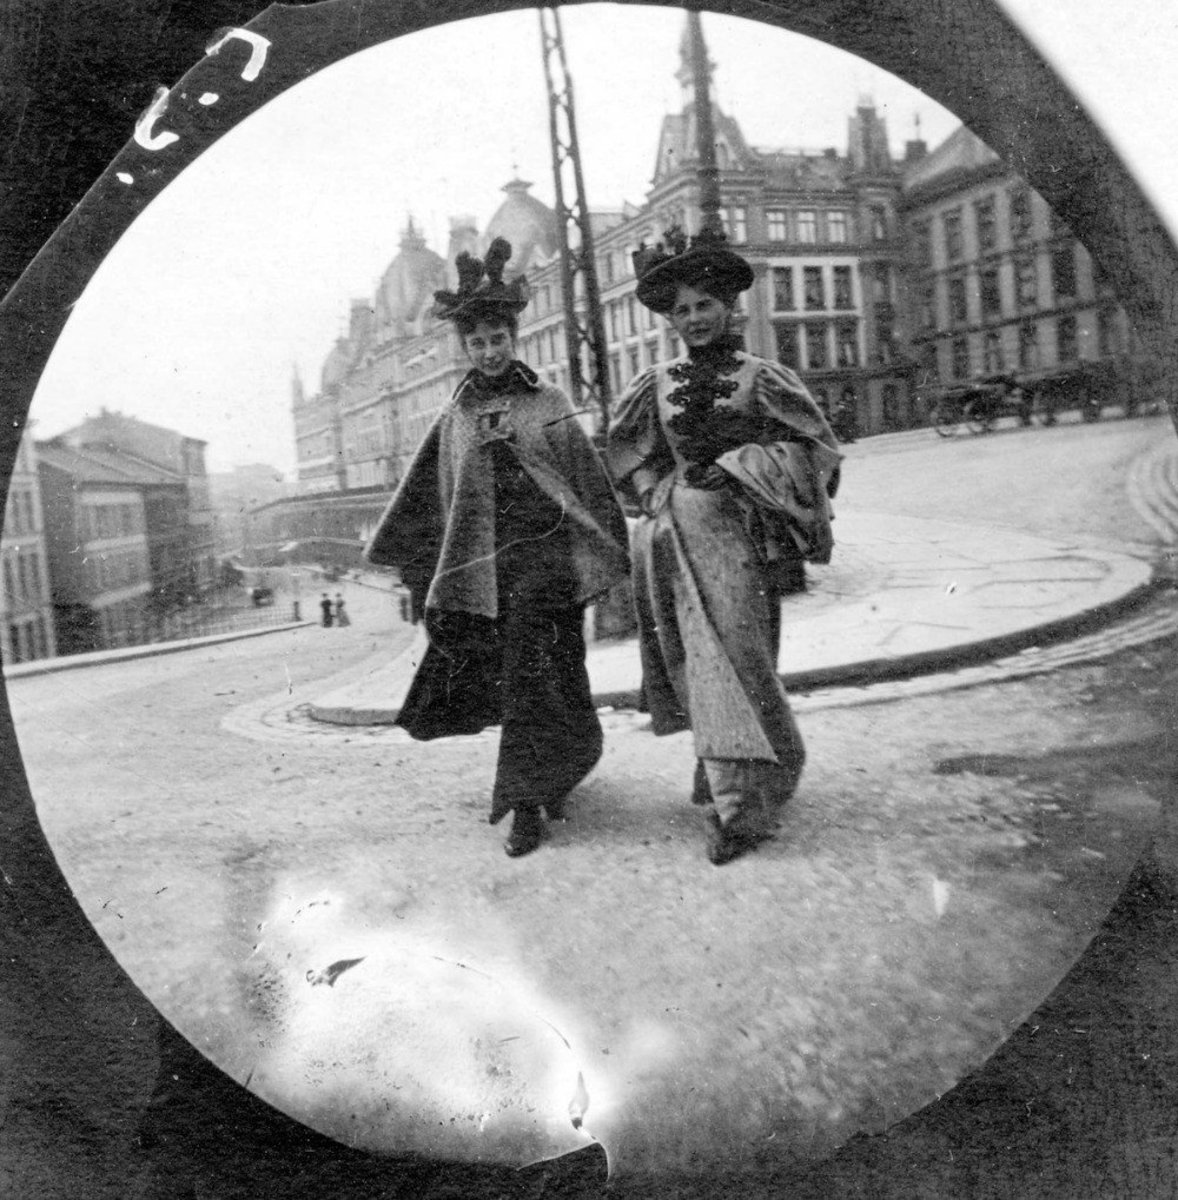 Spy Camera Pictures Of The 1890s Promo Image